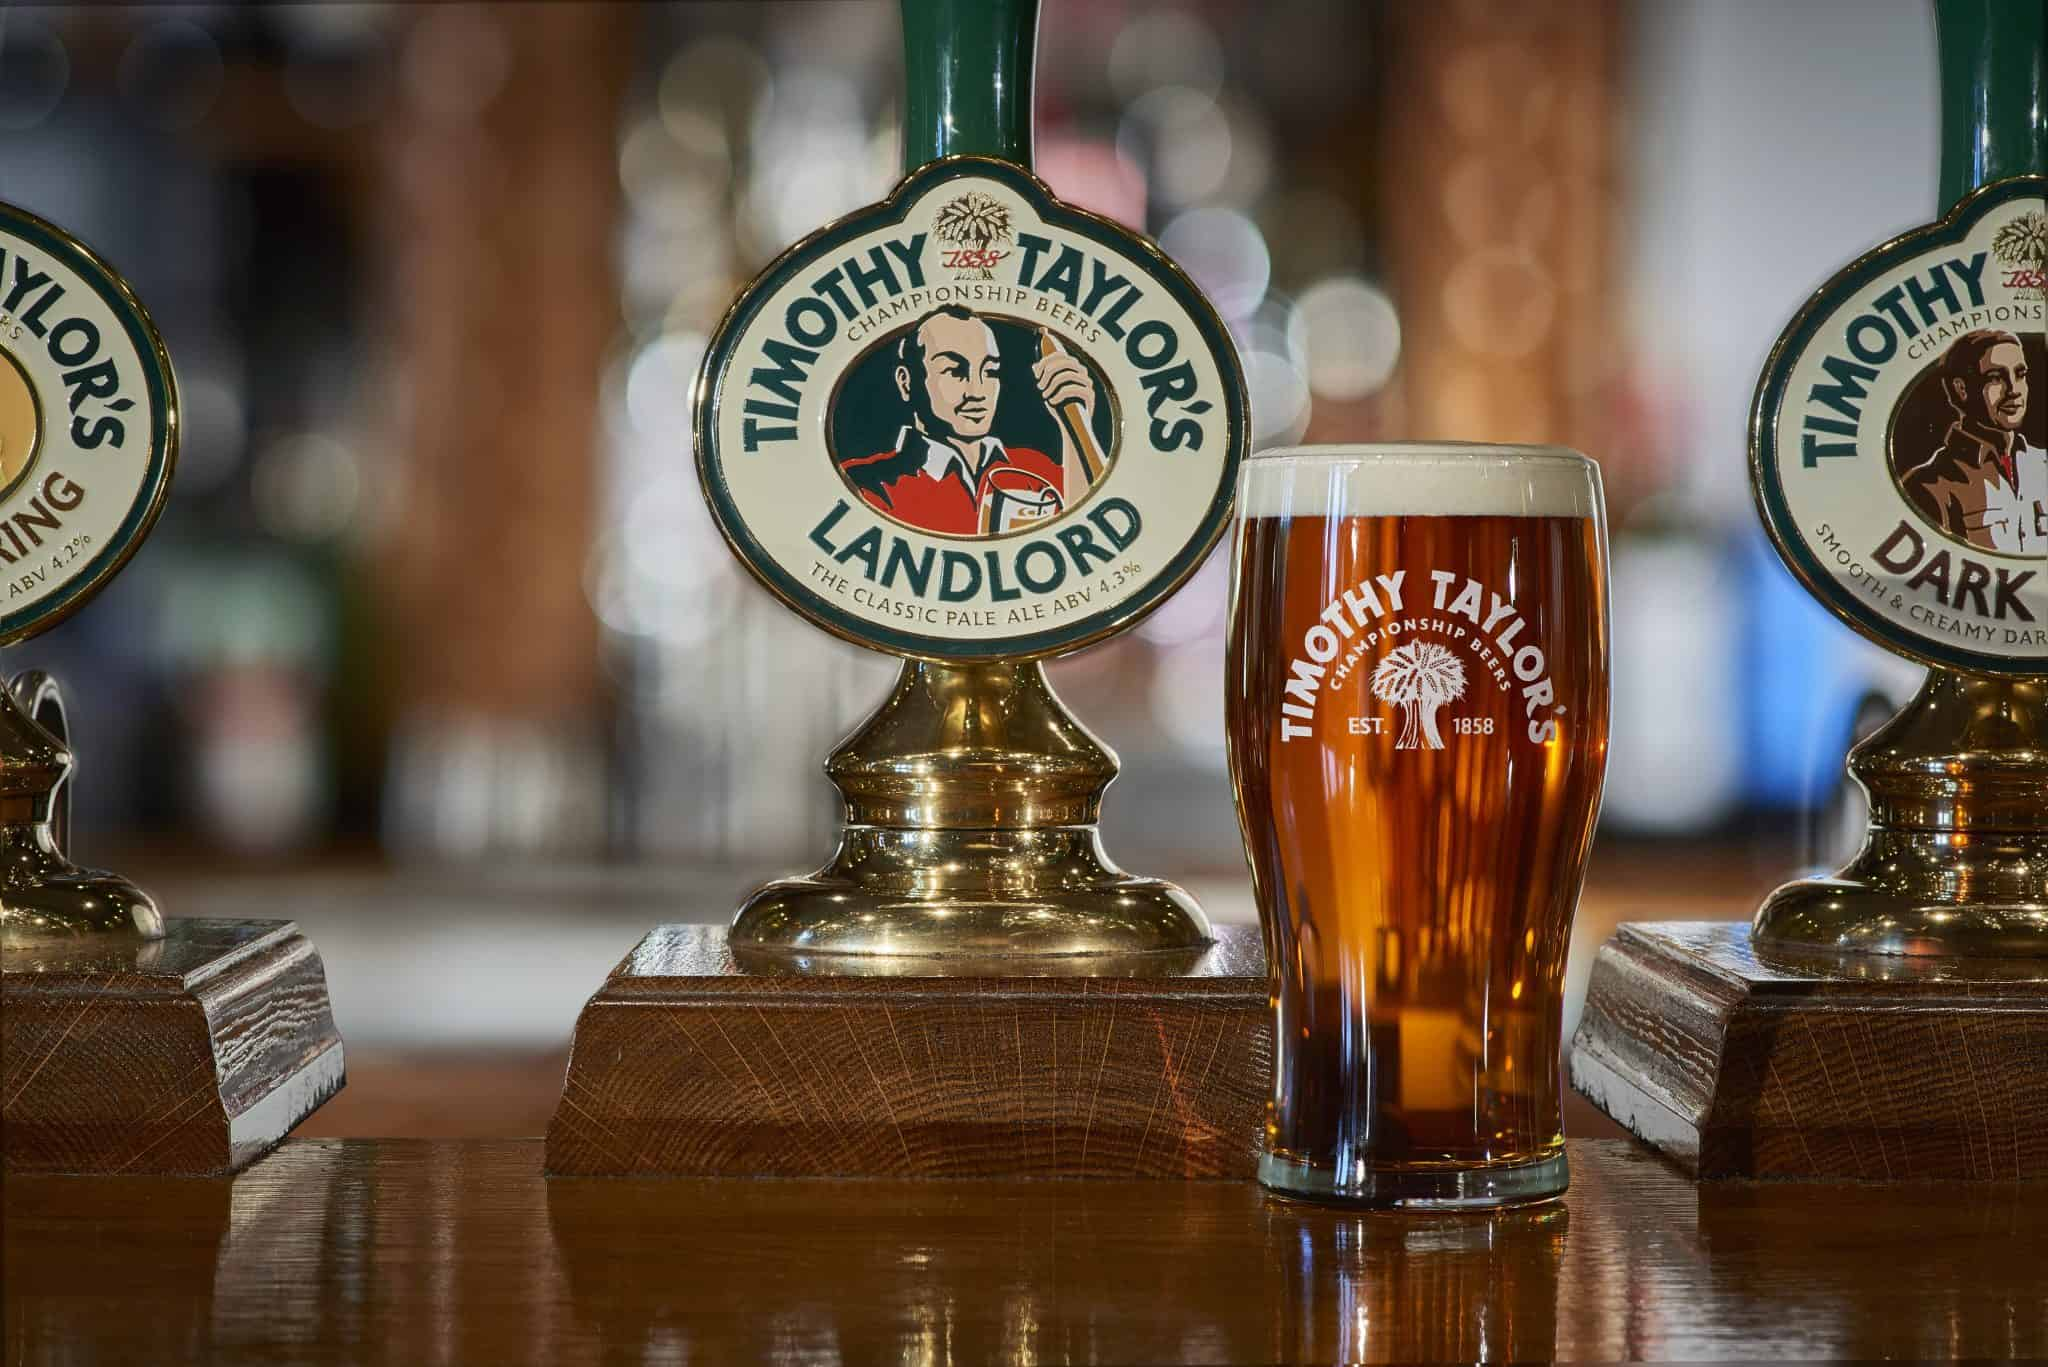 Landlord PUMP CLIP AND GLASS Euro 2020 - the best beers from all 24 competing countries